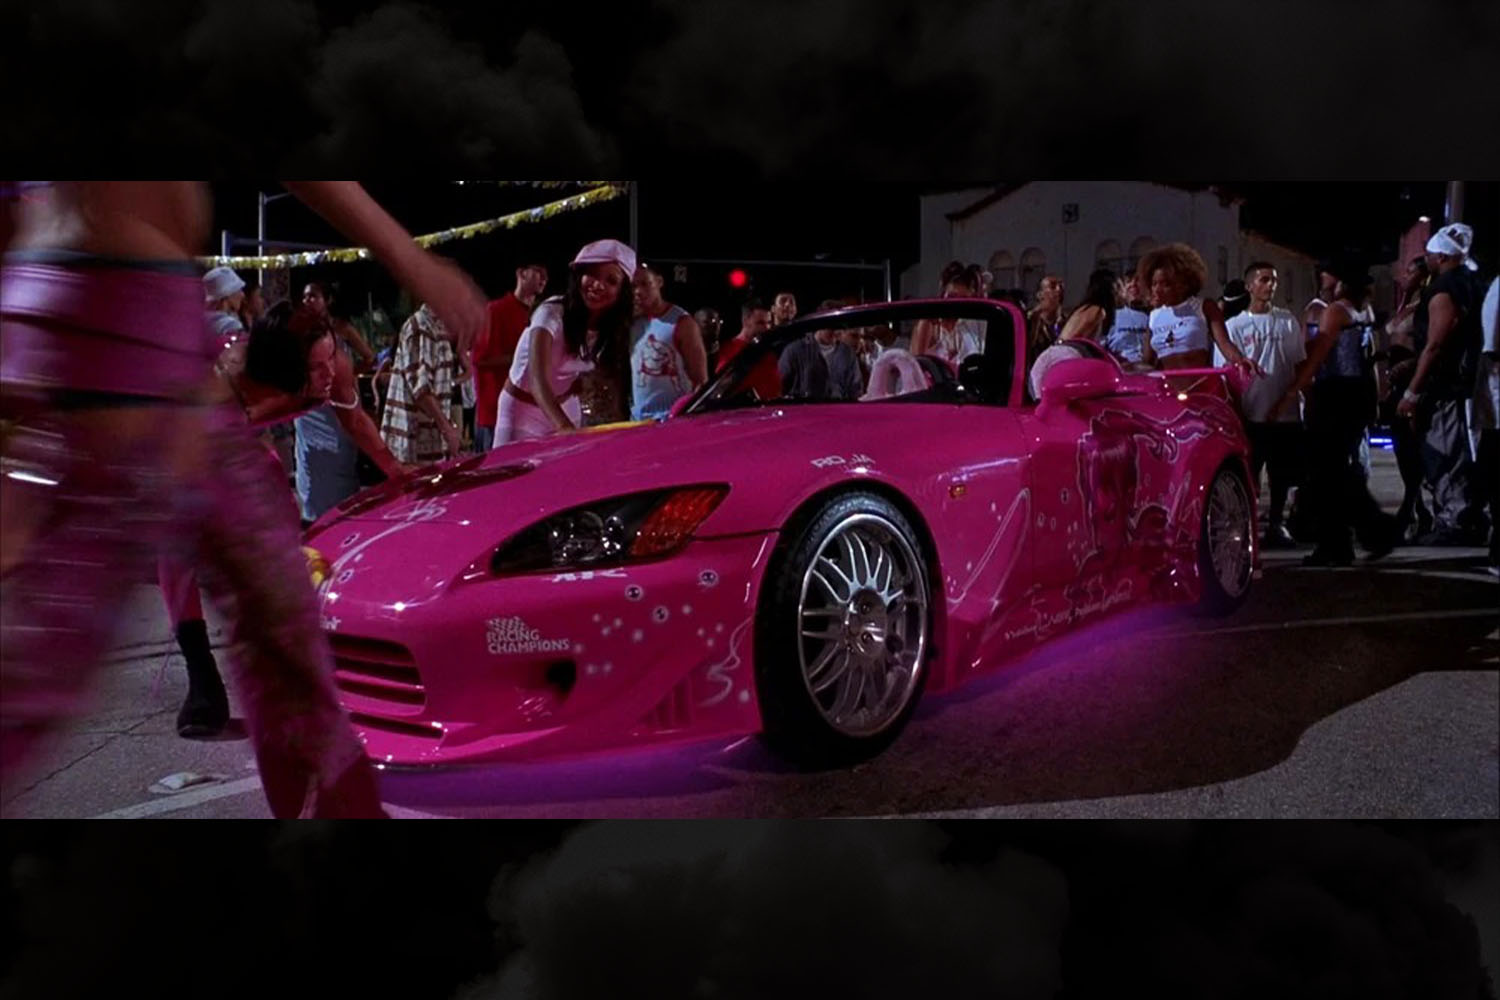 Suki's pink 2000 Honda S2000 from 2 Fast 2 Furious with underglow lighting is one of our favorite from the Fast and Furious franchise